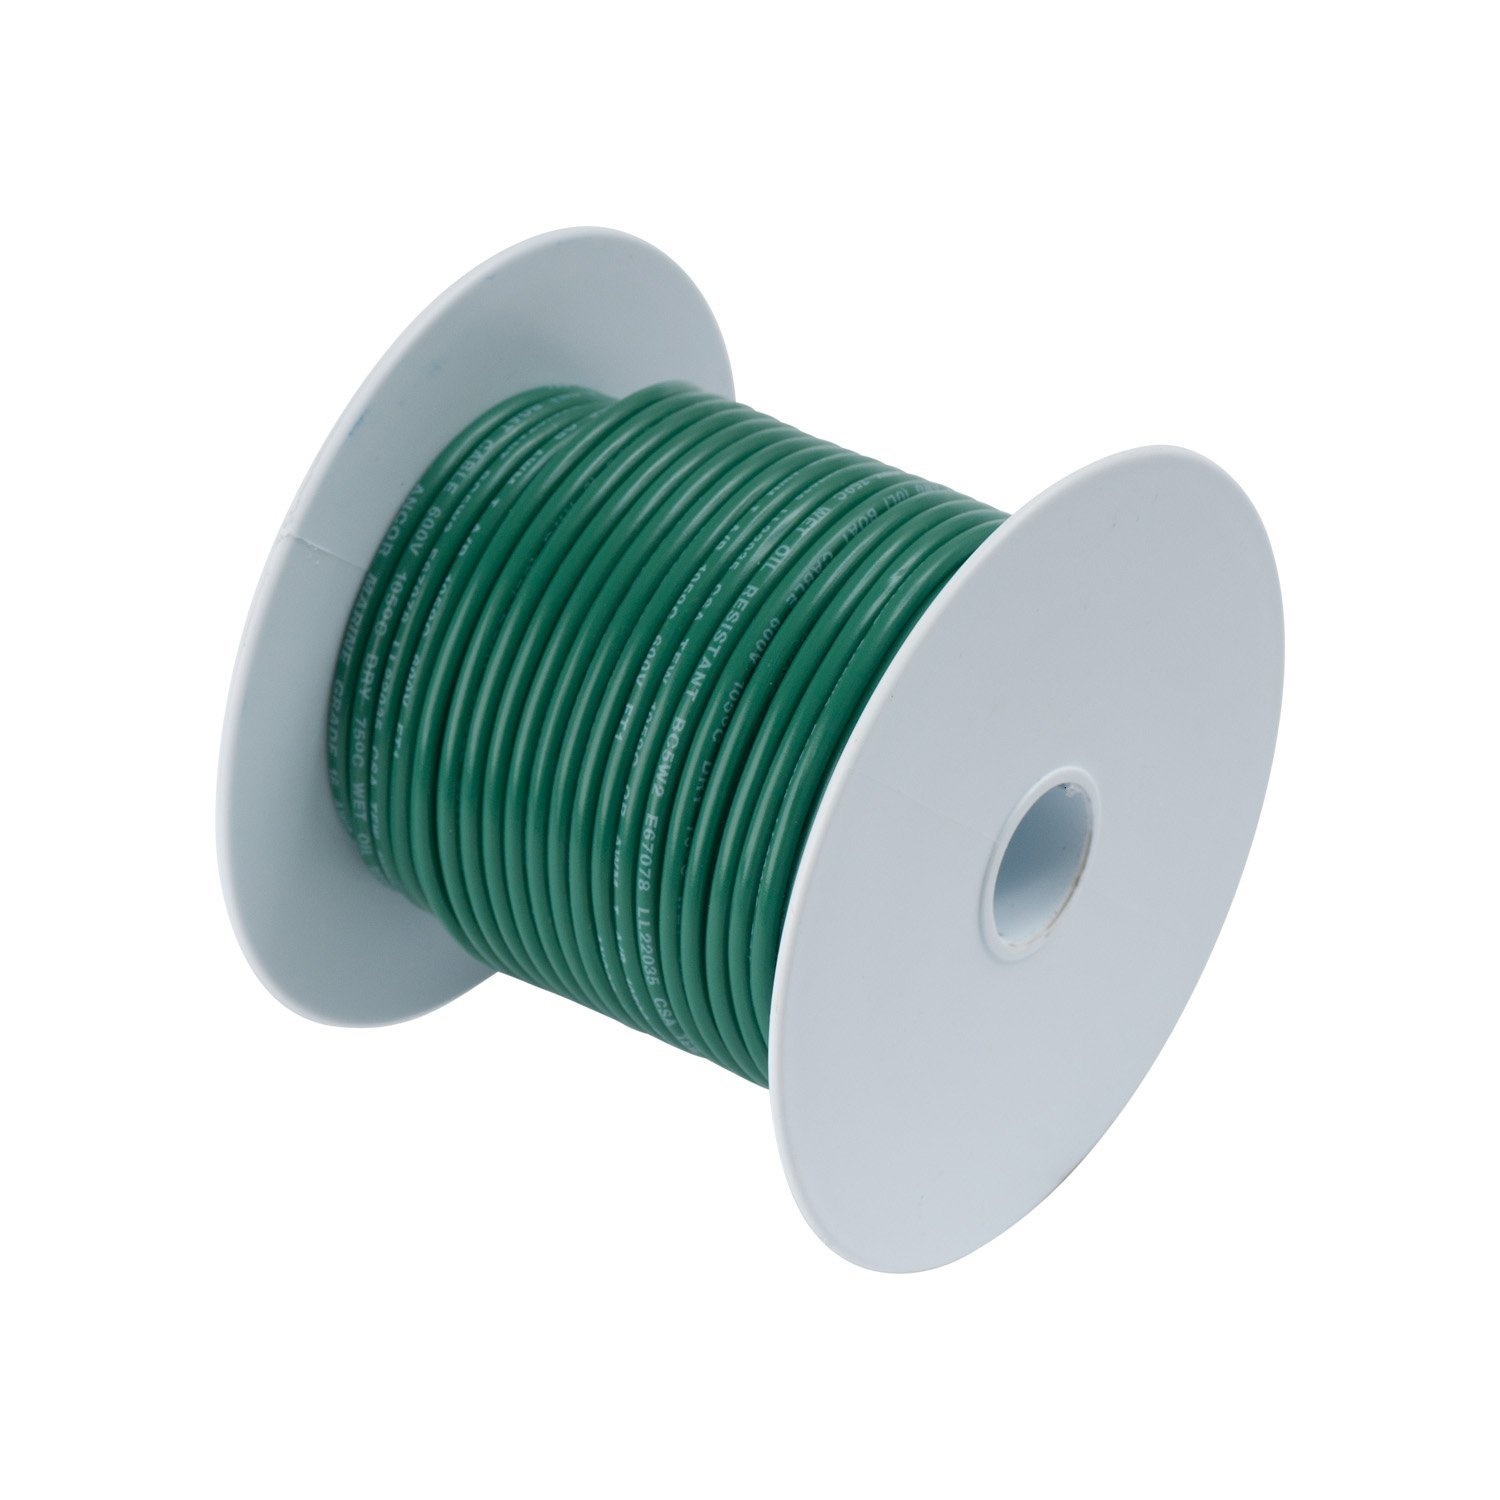 Calterm 50163 Electrical Primary Wire 16 AWG Green 30 ft.